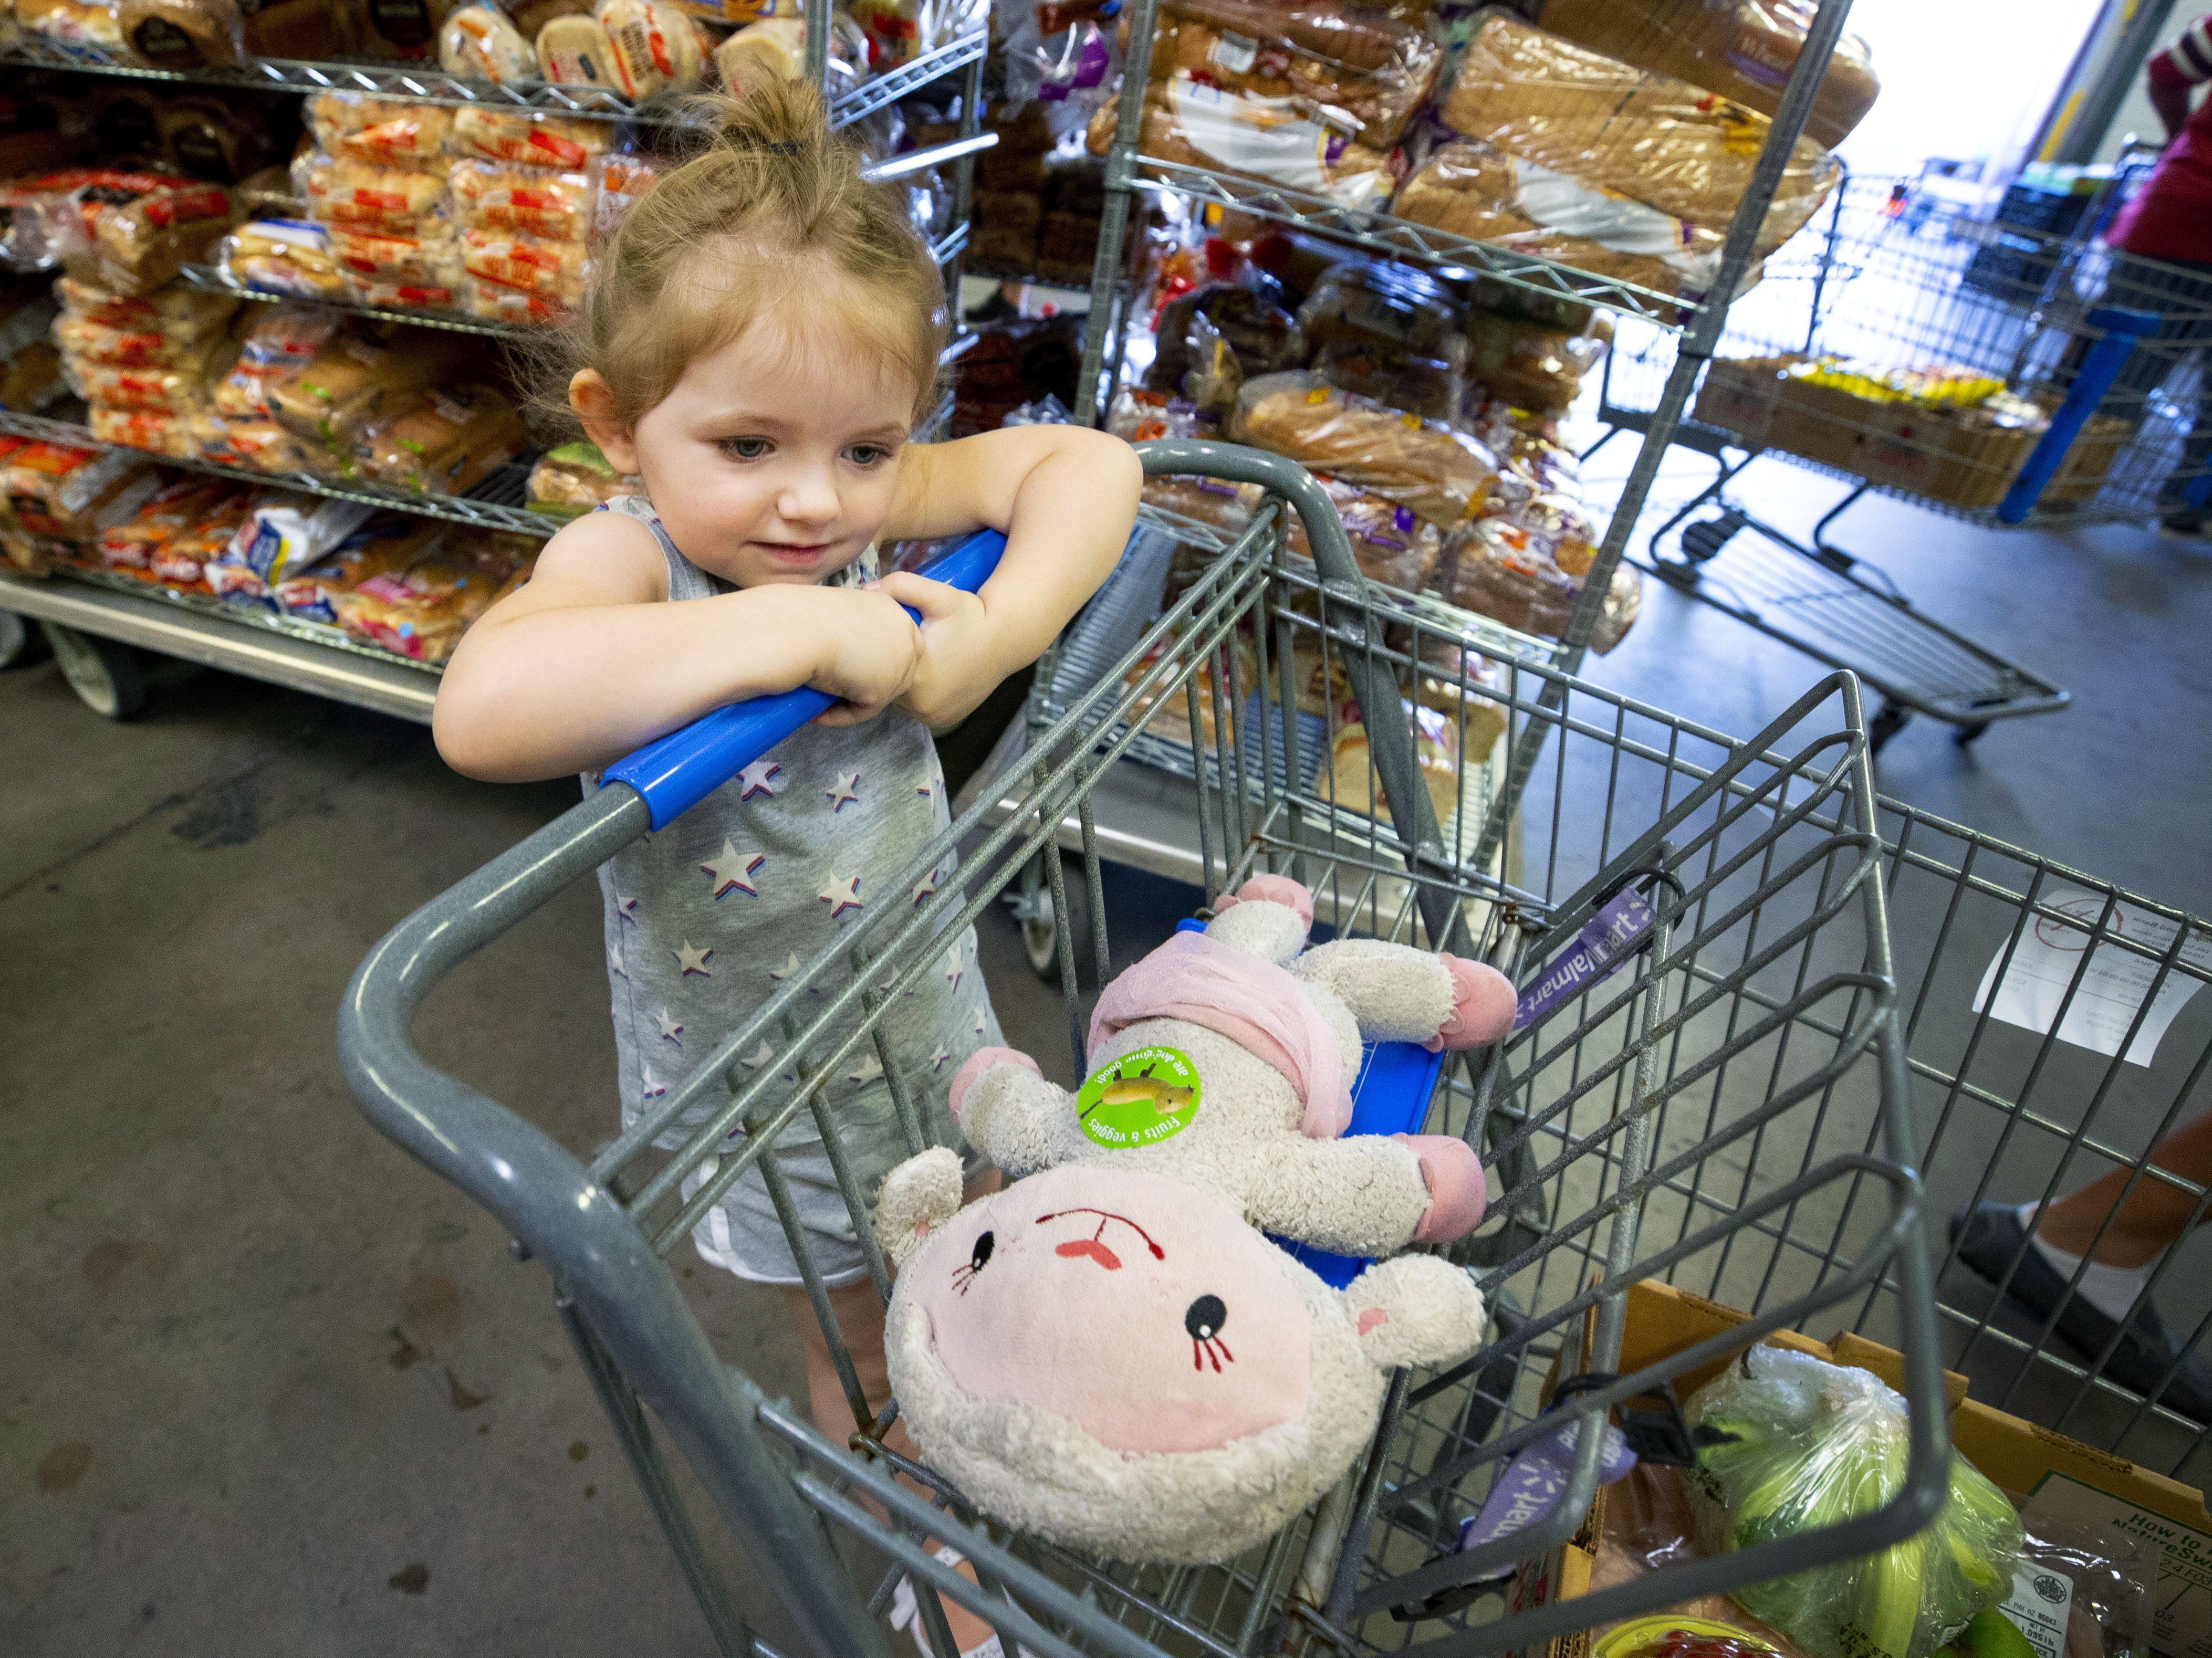 Raelyn Dawley, 2, receives food with her father, Brandon,  at United Food Bank in Mesa on September 28, 2018.